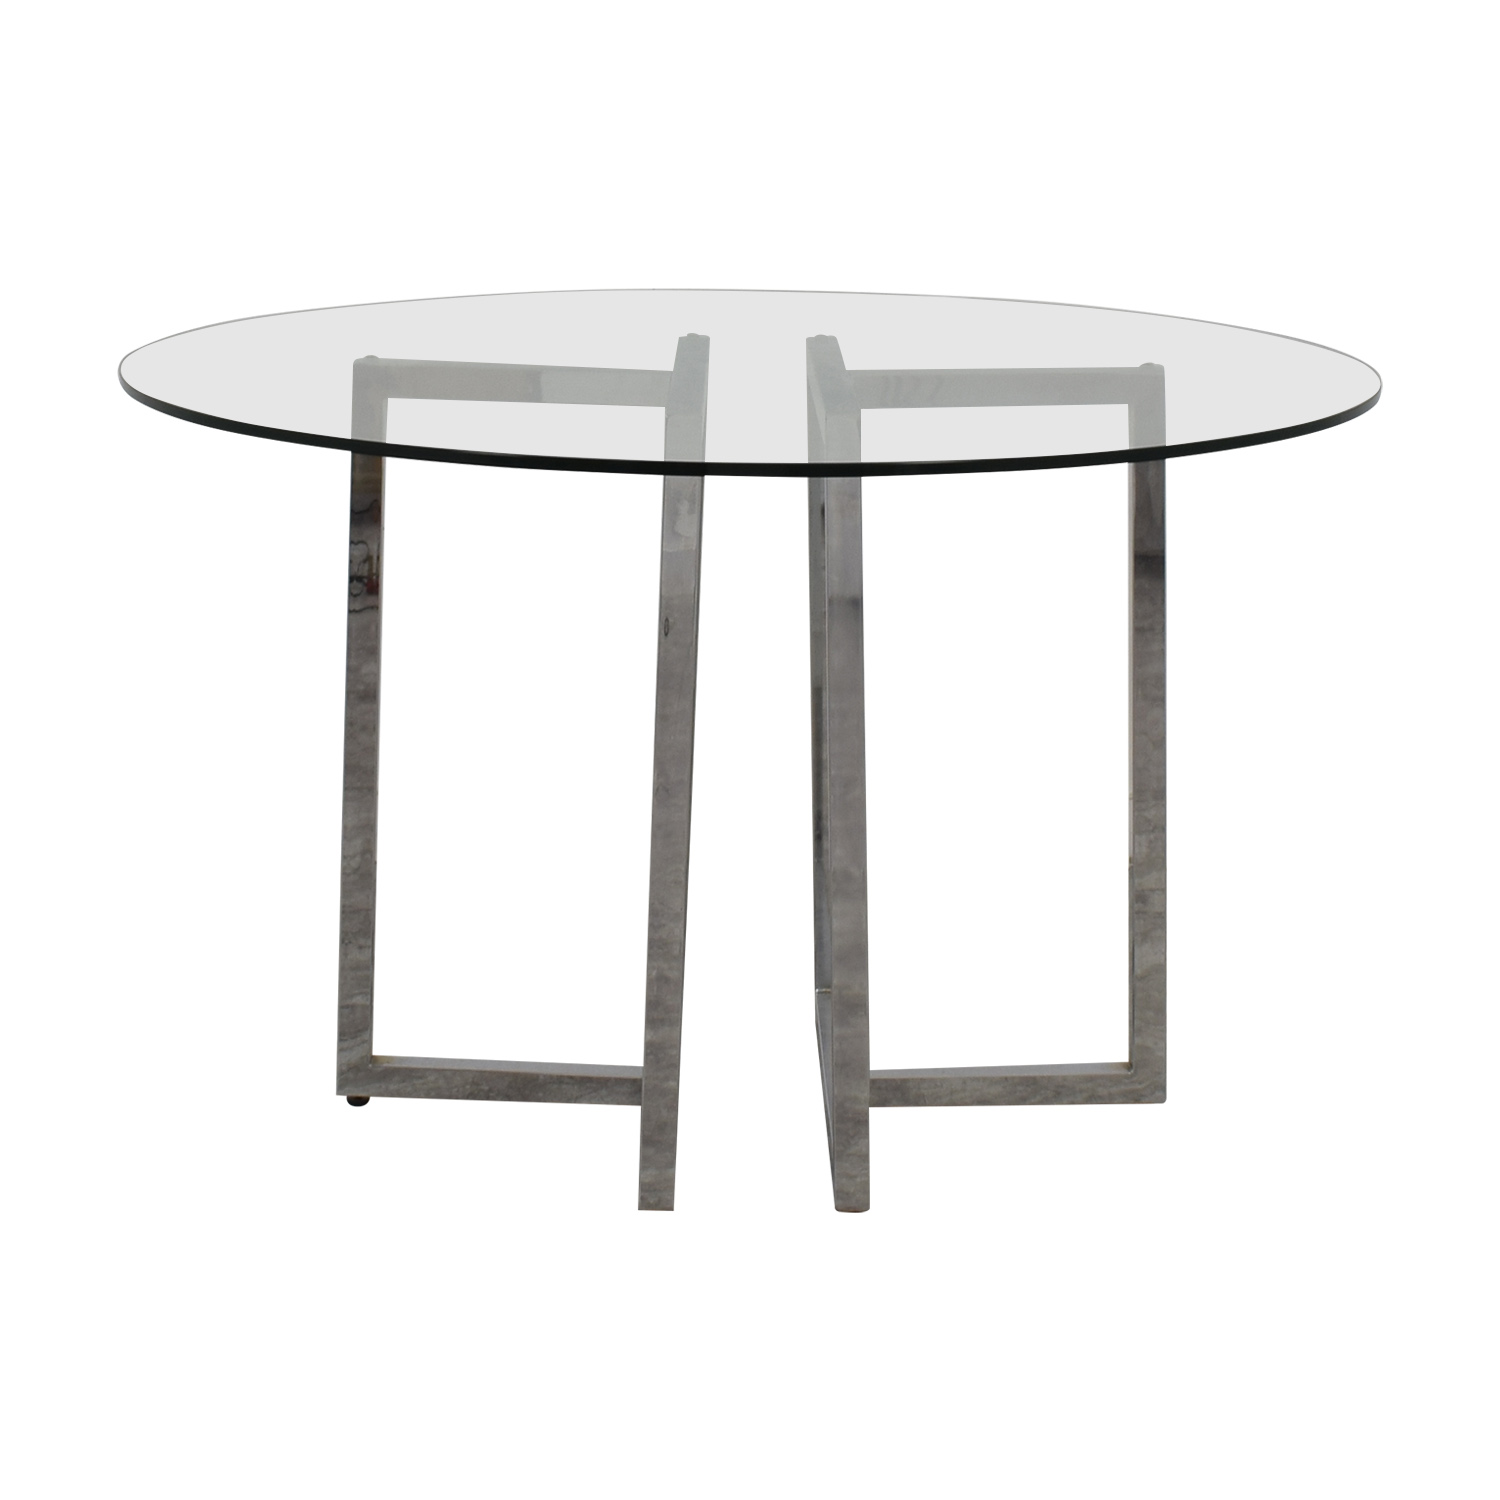 OFF CB CB Silverado Glass Round Dining Table Tables - Cb2 expandable dining table